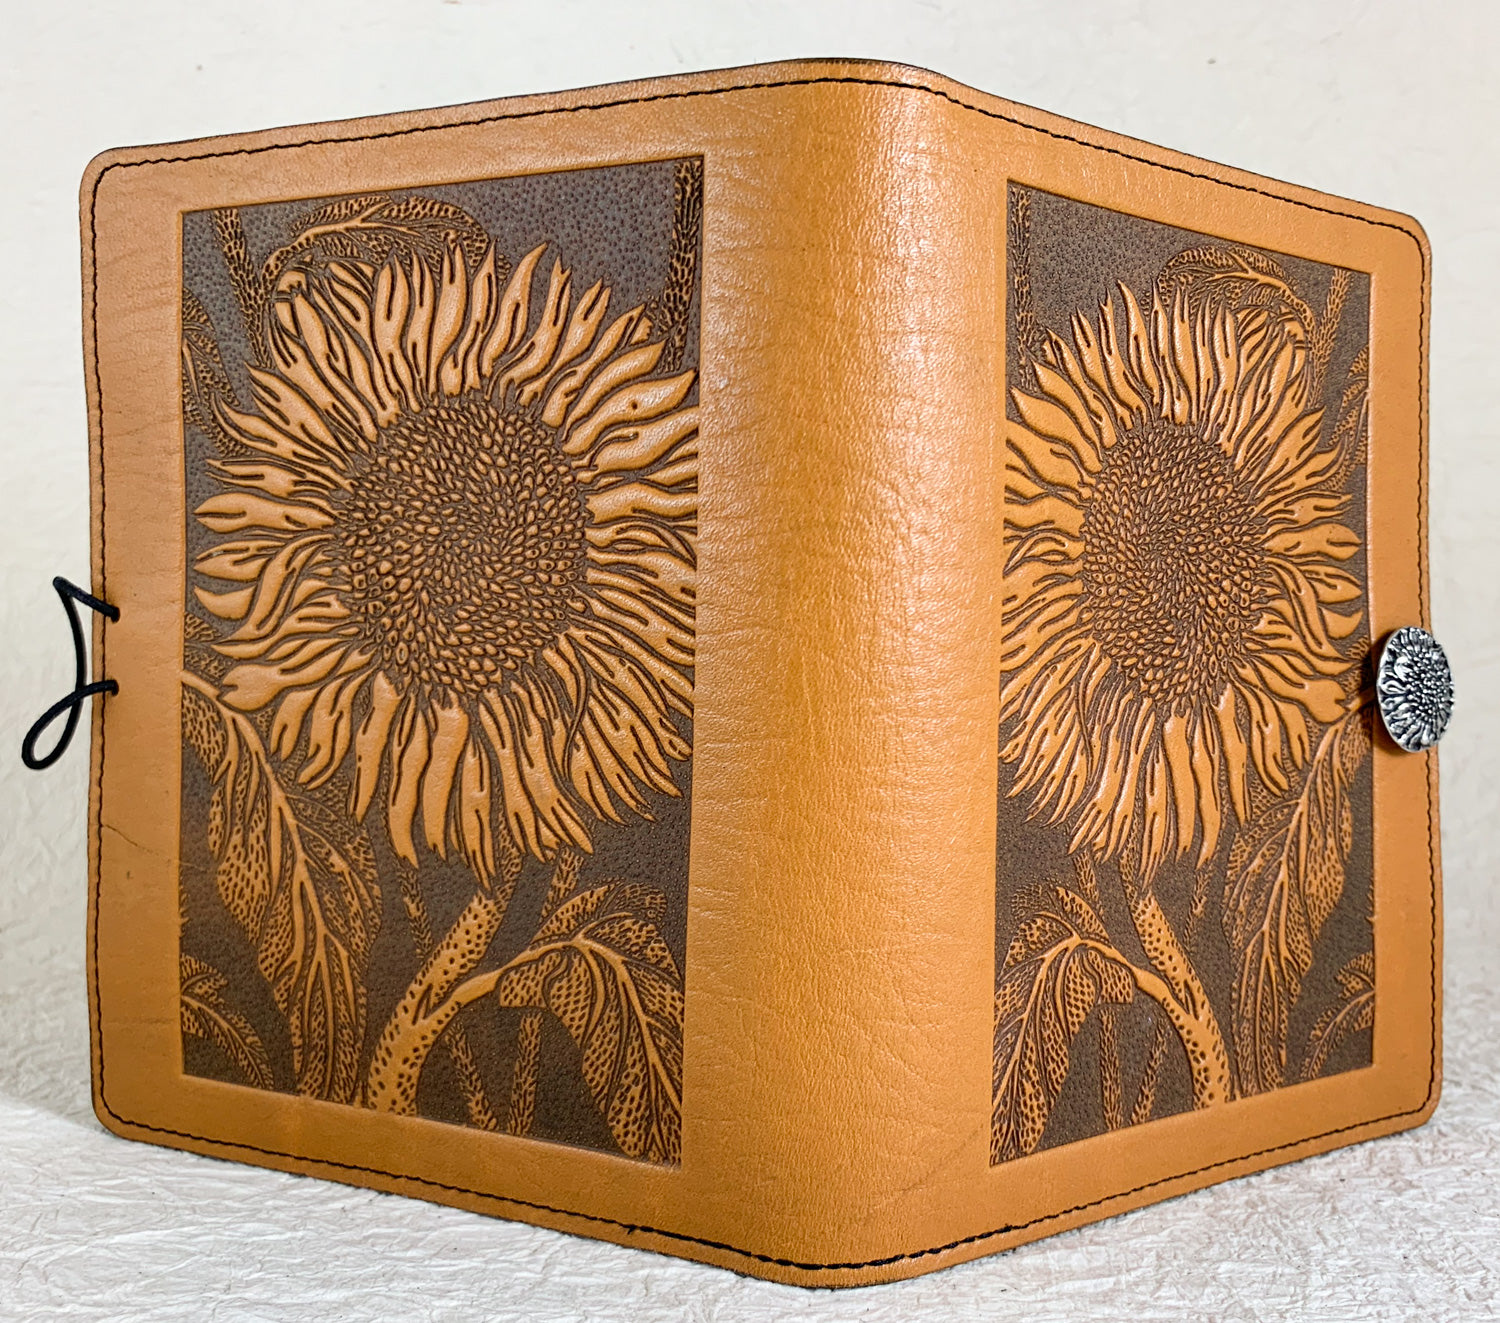 SPECIAL RETRO | Kindle Paperwhite or Voyage Cover | Sunflower in Marigold